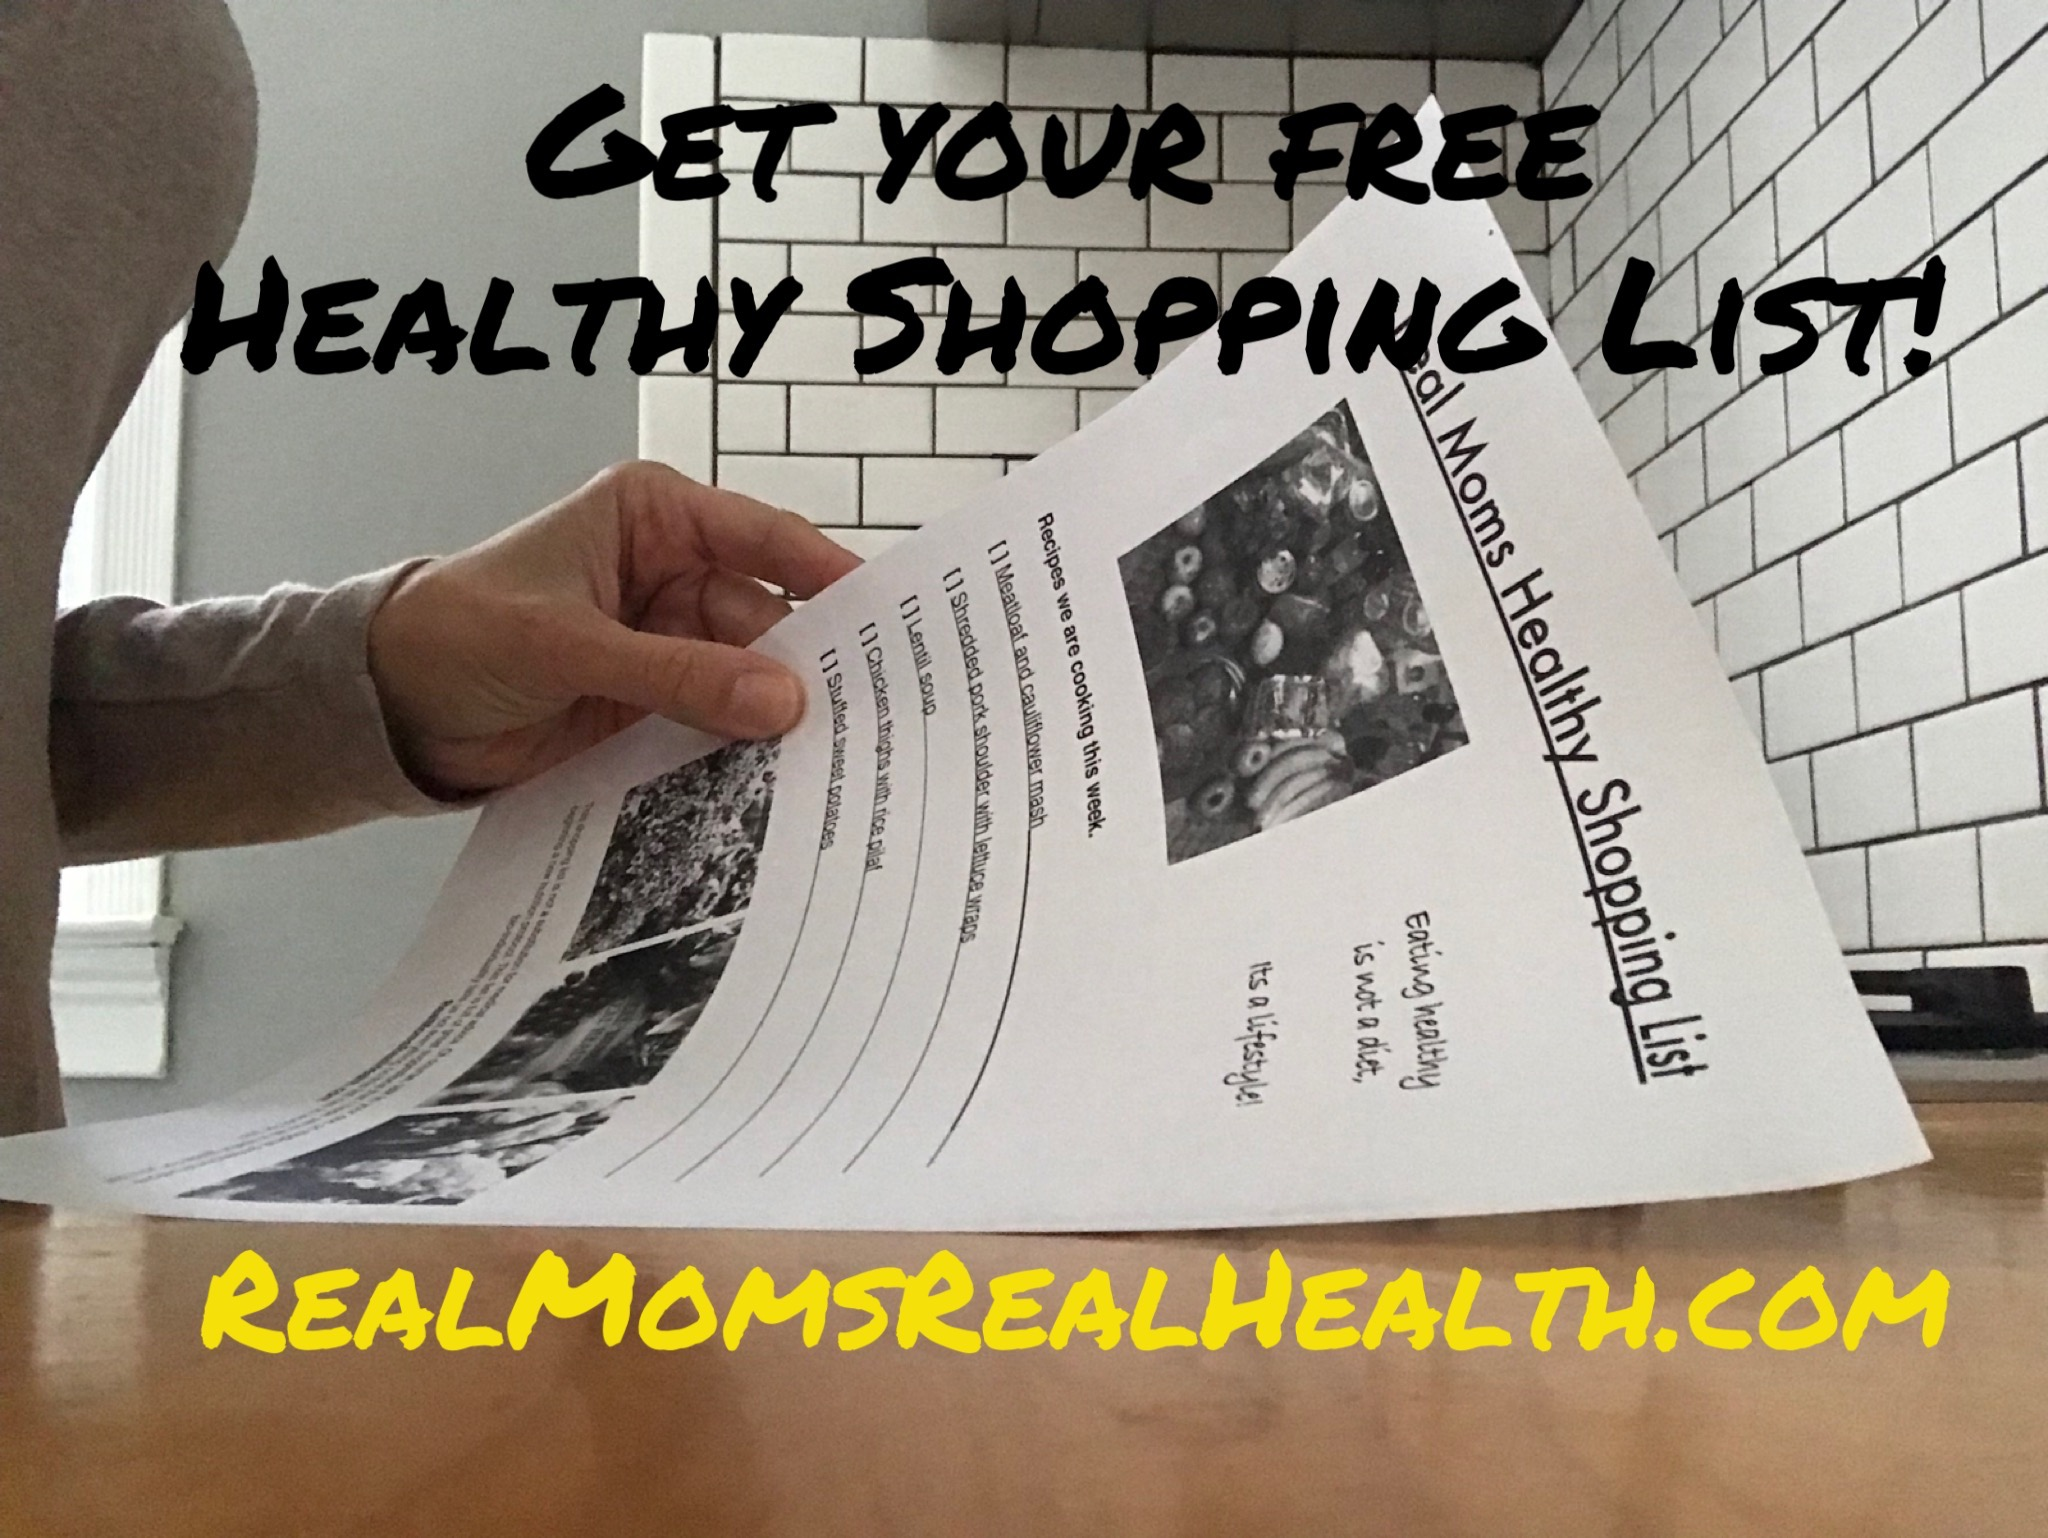 Make healthy a whole lot easier. - GET YOUR FREE HEALTHY SHOPPING LIST NOW! CREATED FOR BUSY MOMS LIKE US!